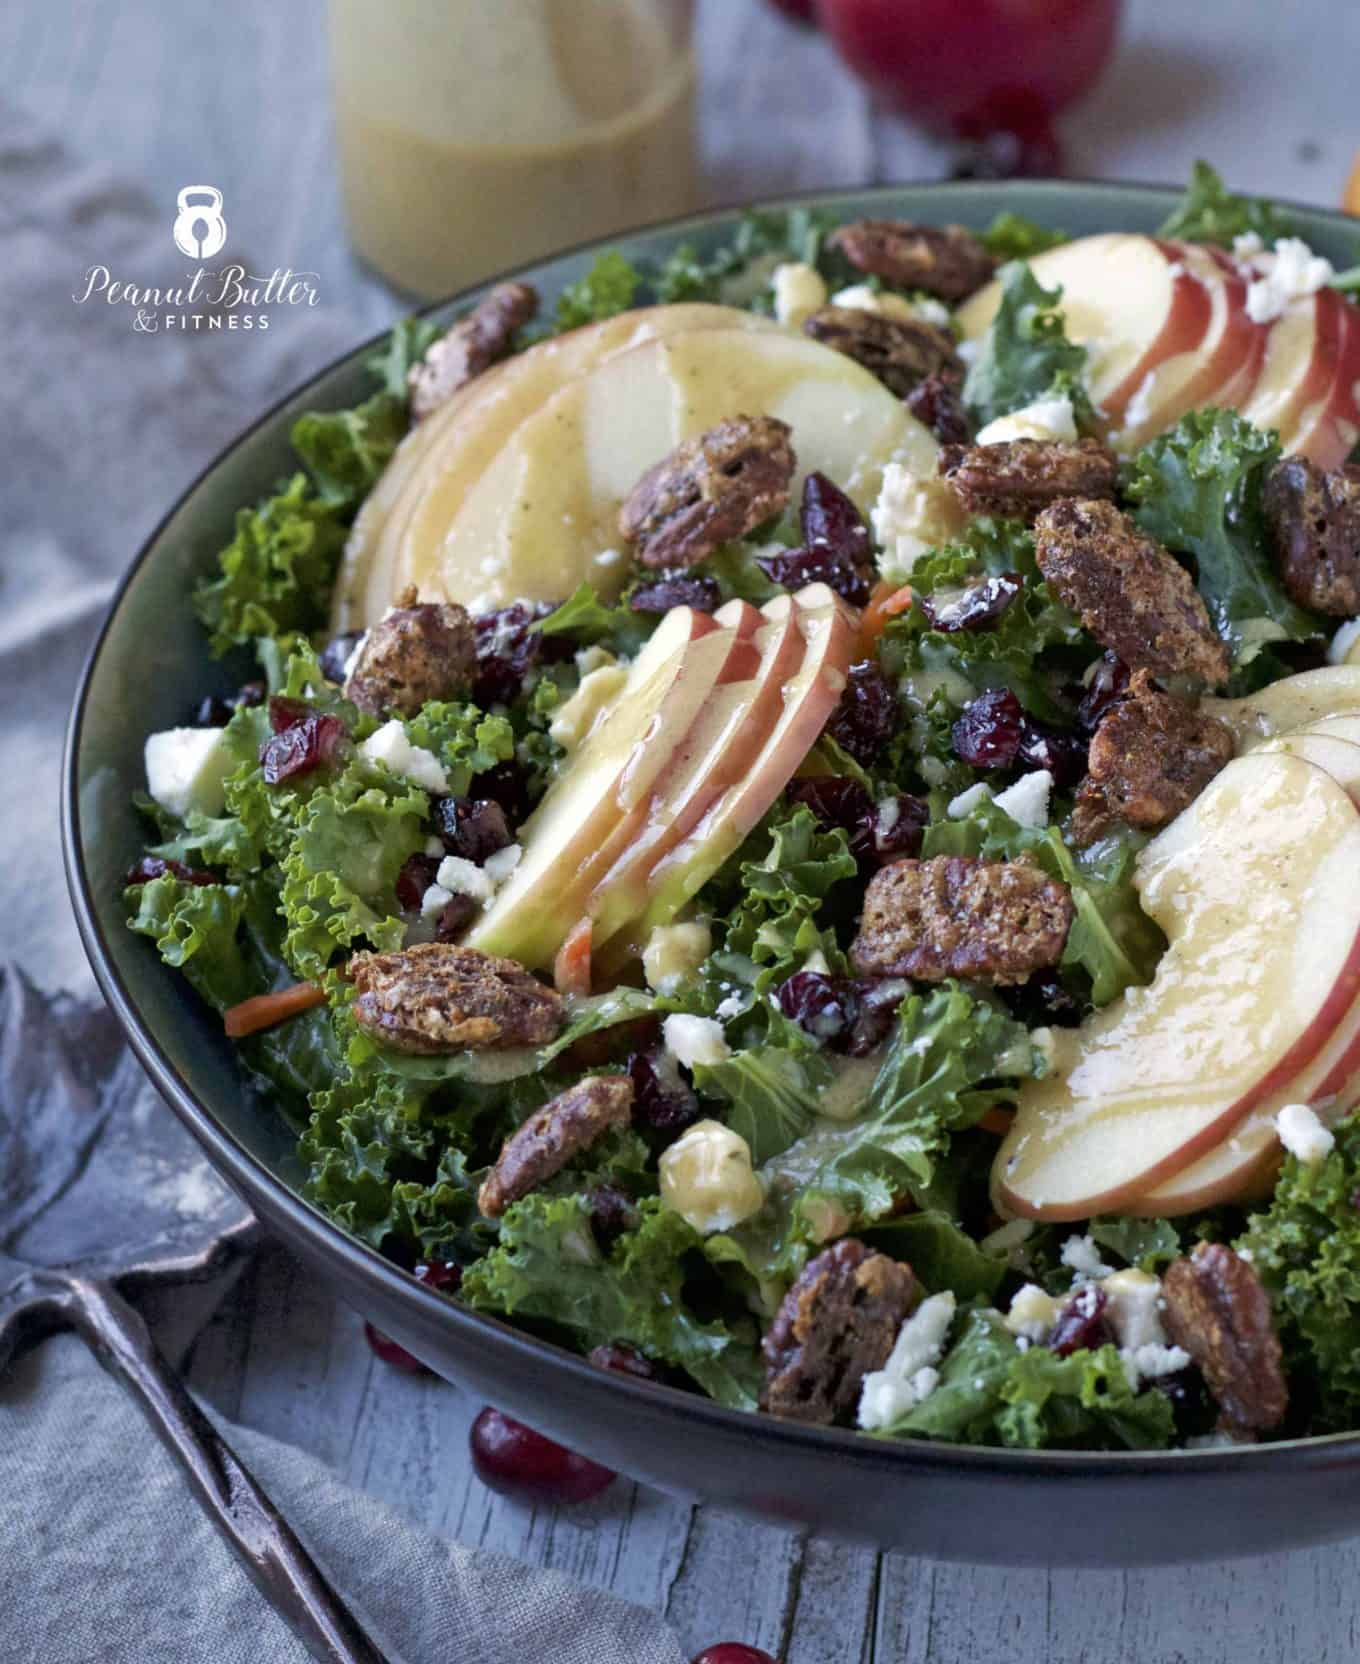 Shredded Brussels Sprouts and Kale Salad with Maple Dijon Vinaigrette